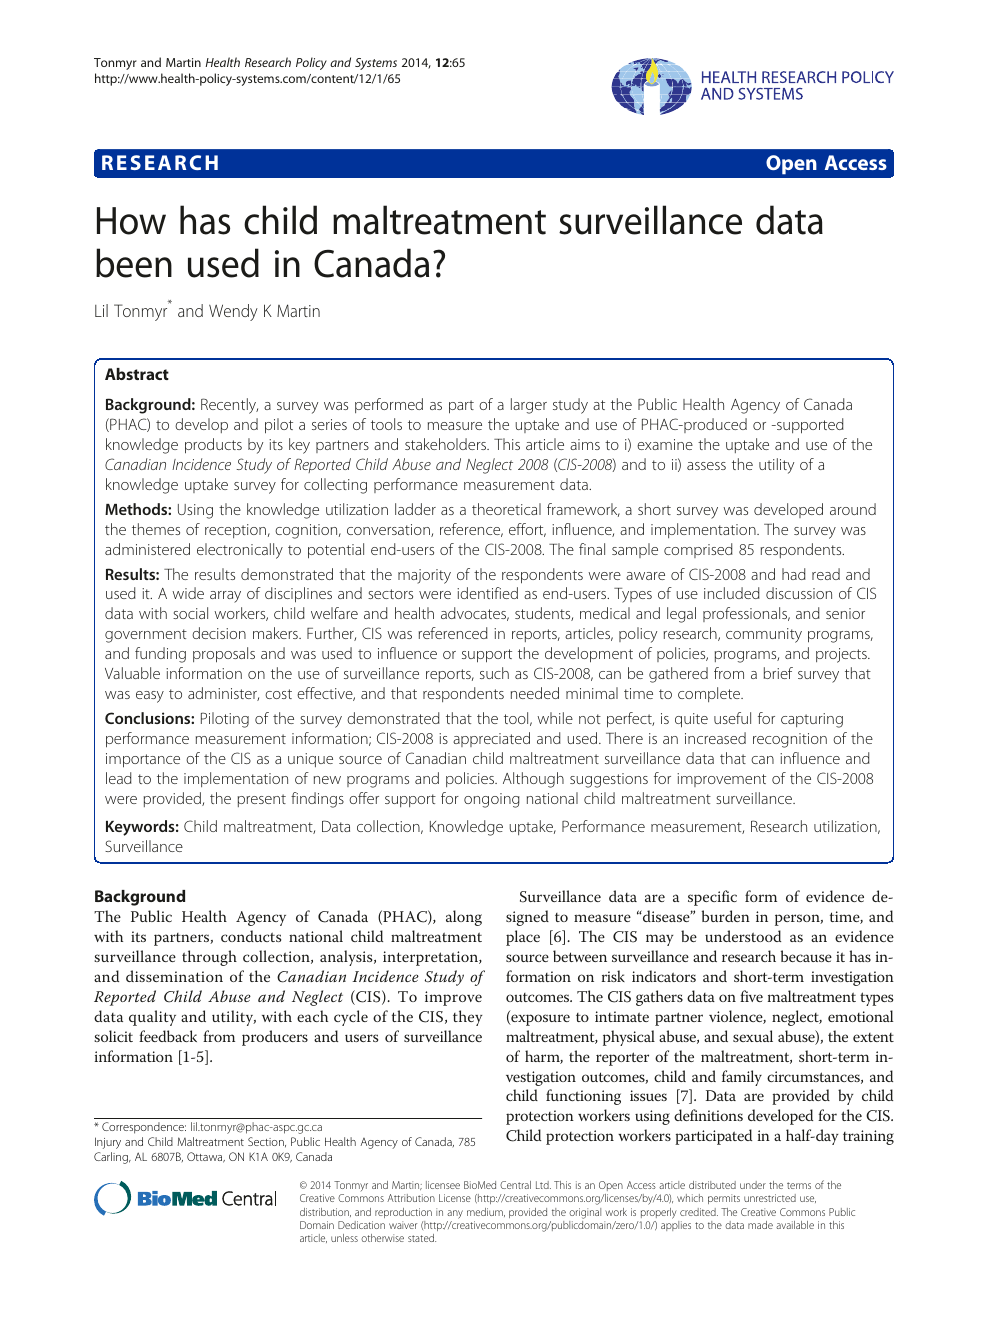 How has child maltreatment surveillance data been used in